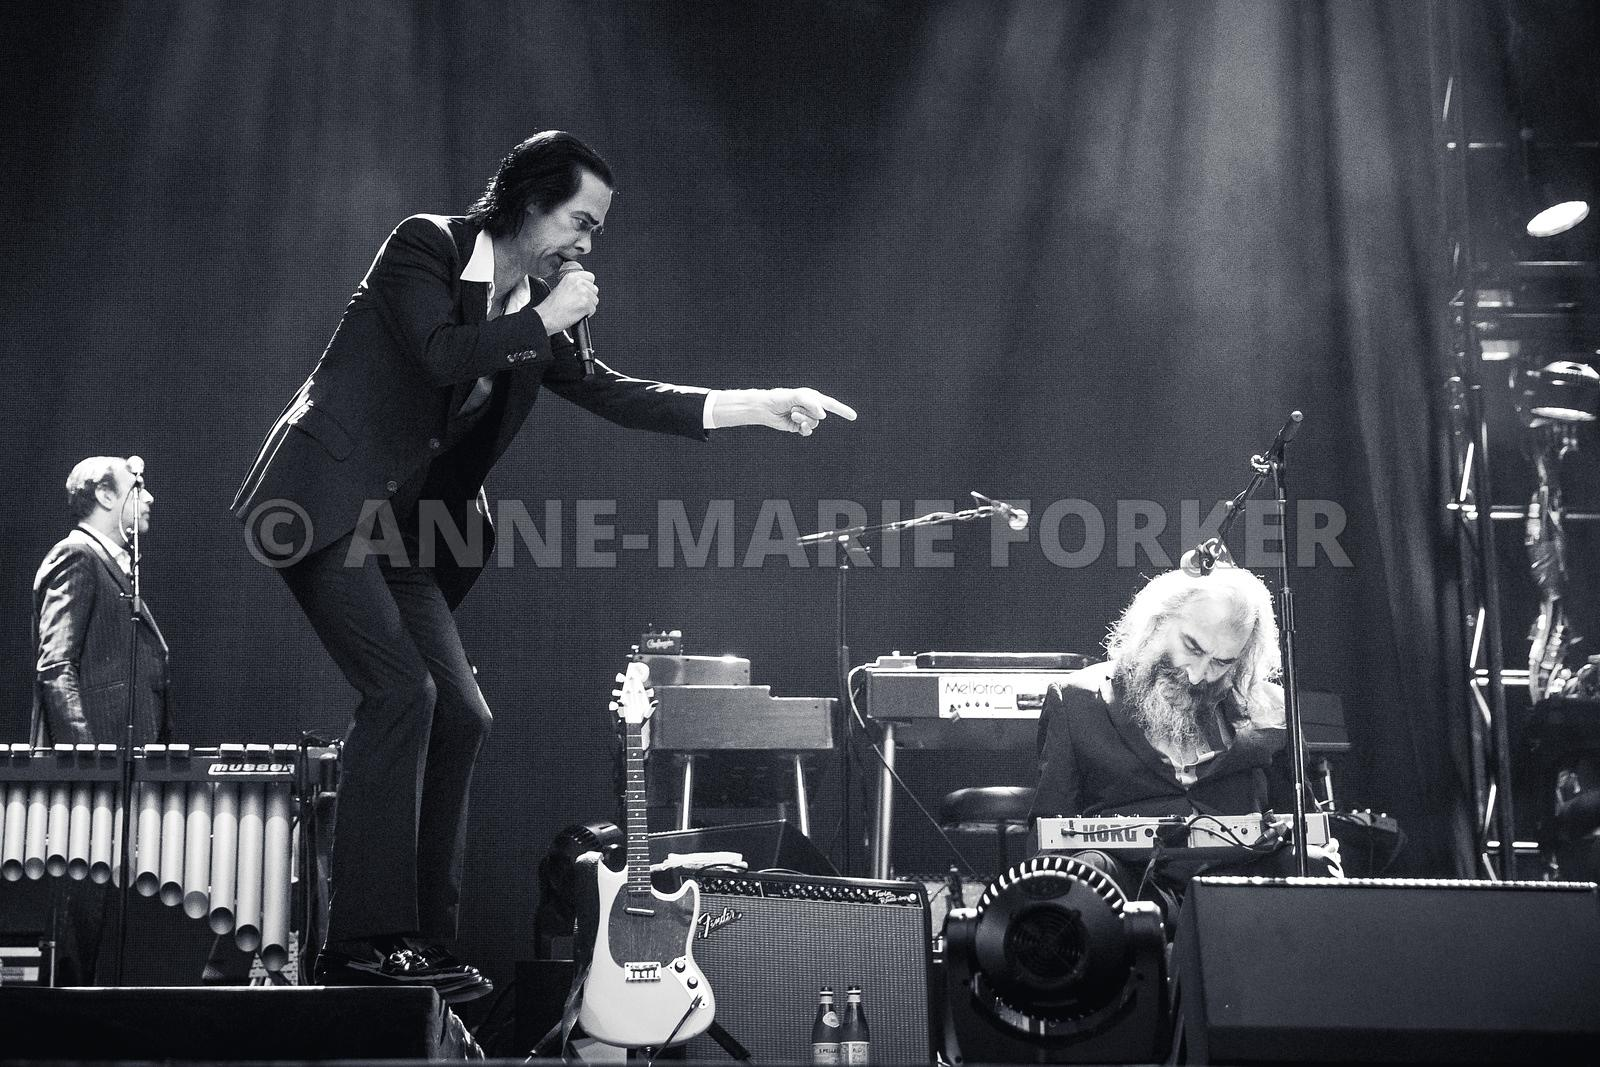 Nick_Cave_-_AM_Forker-7443